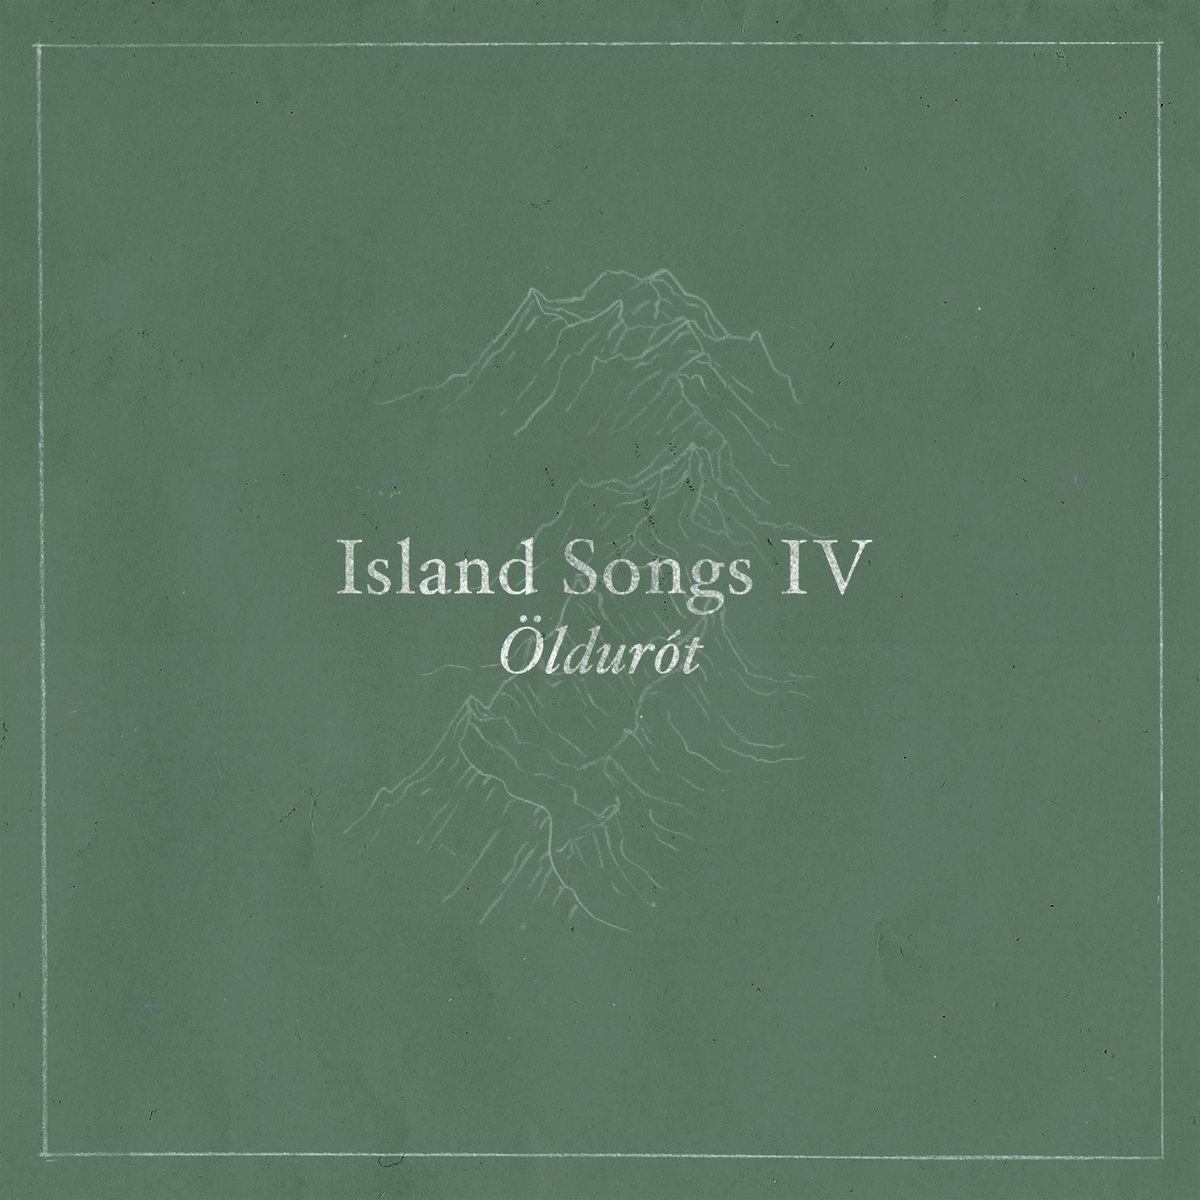 Have you heard the fourth track from #islandsongs?  Listen on @Spotify: https://t.co/ShuE0aydVl https://t.co/TwMsmUcTZ3